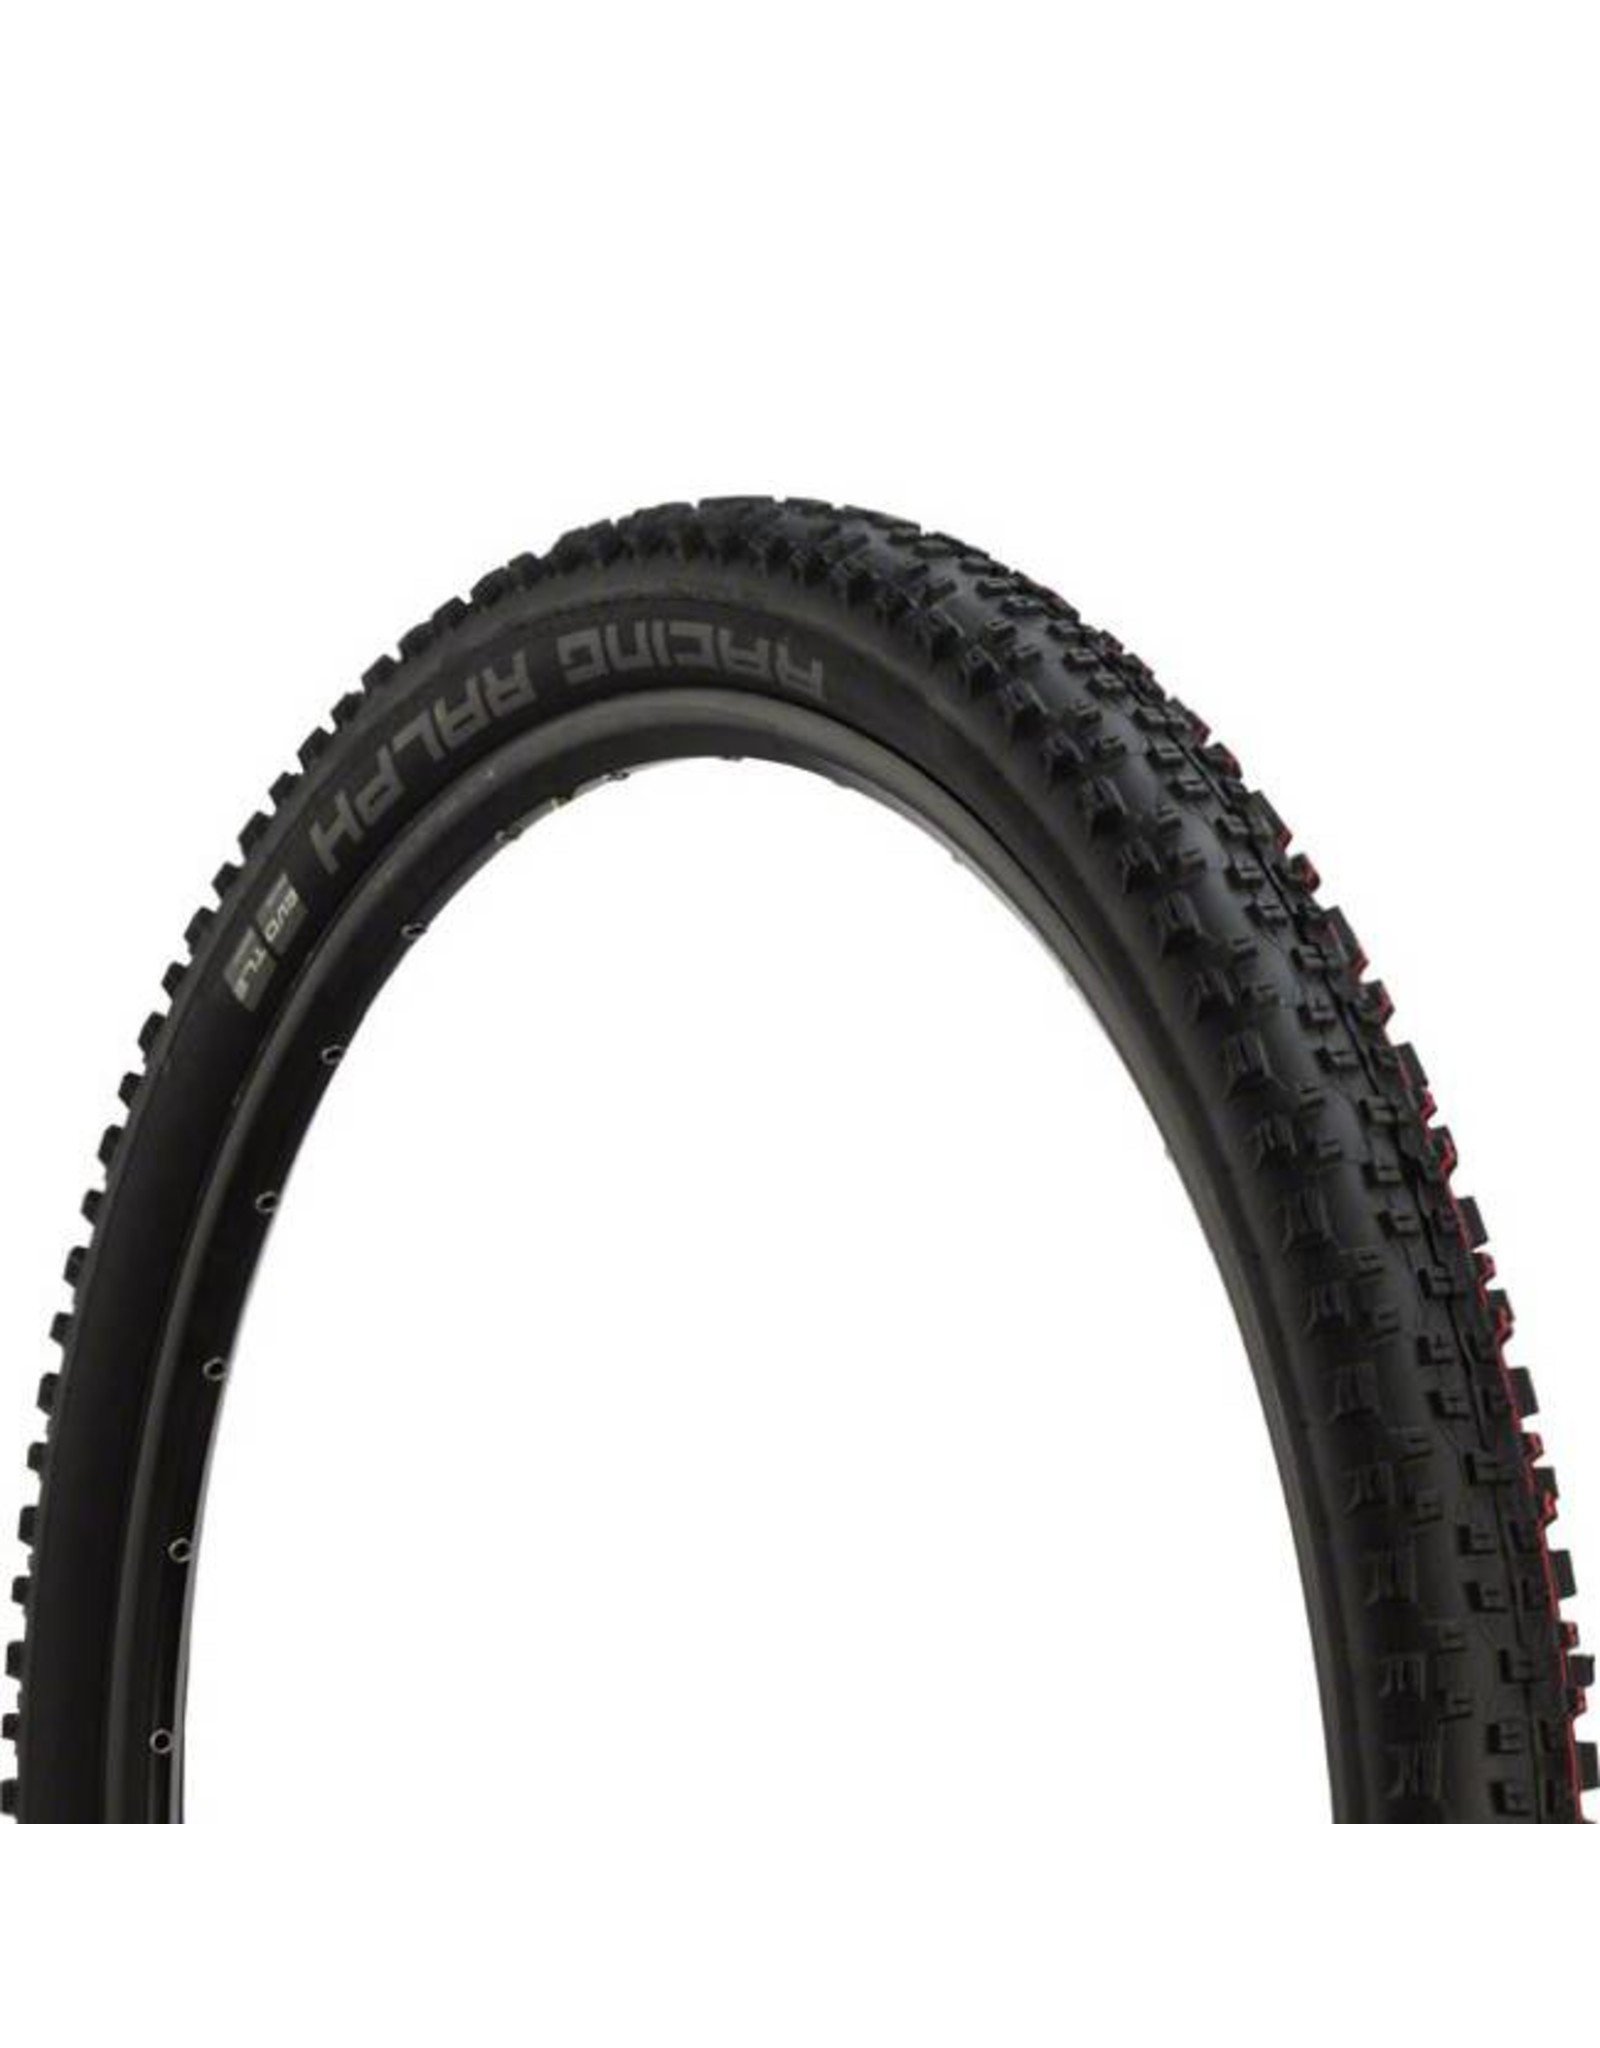 "Schwalbe Schwalbe Racing Ralph Tire: 29 x 2.25"", Folding Bead, Evolution Line, Addix Speed Compound, SnakeSkin, Tubeless Easy, Black"